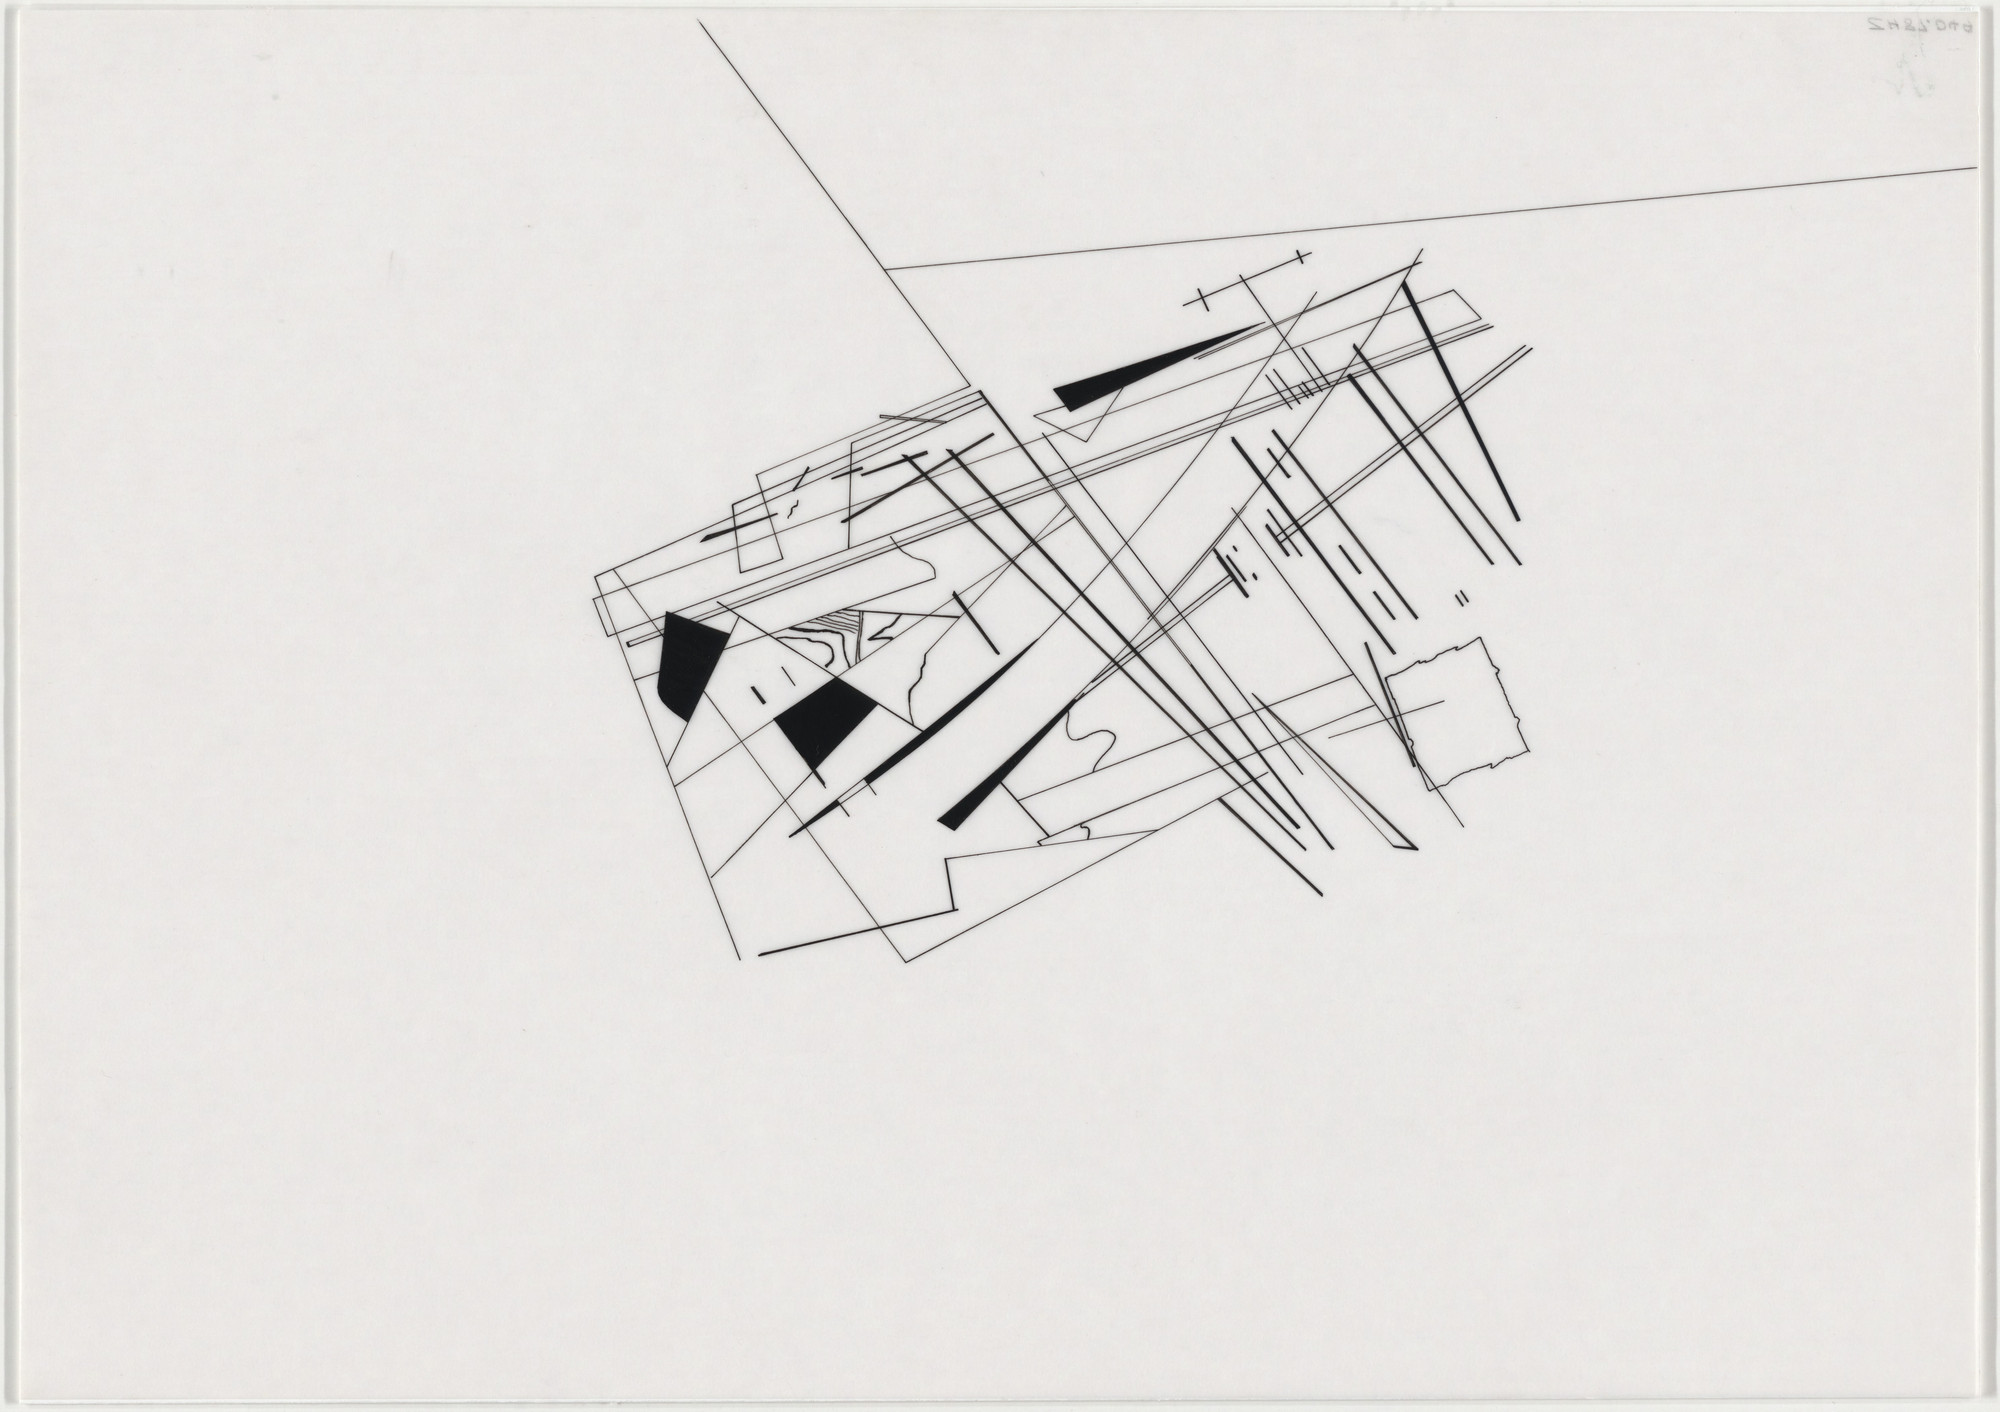 Zaha Hadid. Parc de la Villette Project, Paris, France (Composite [divisions of plot]). 1982-83